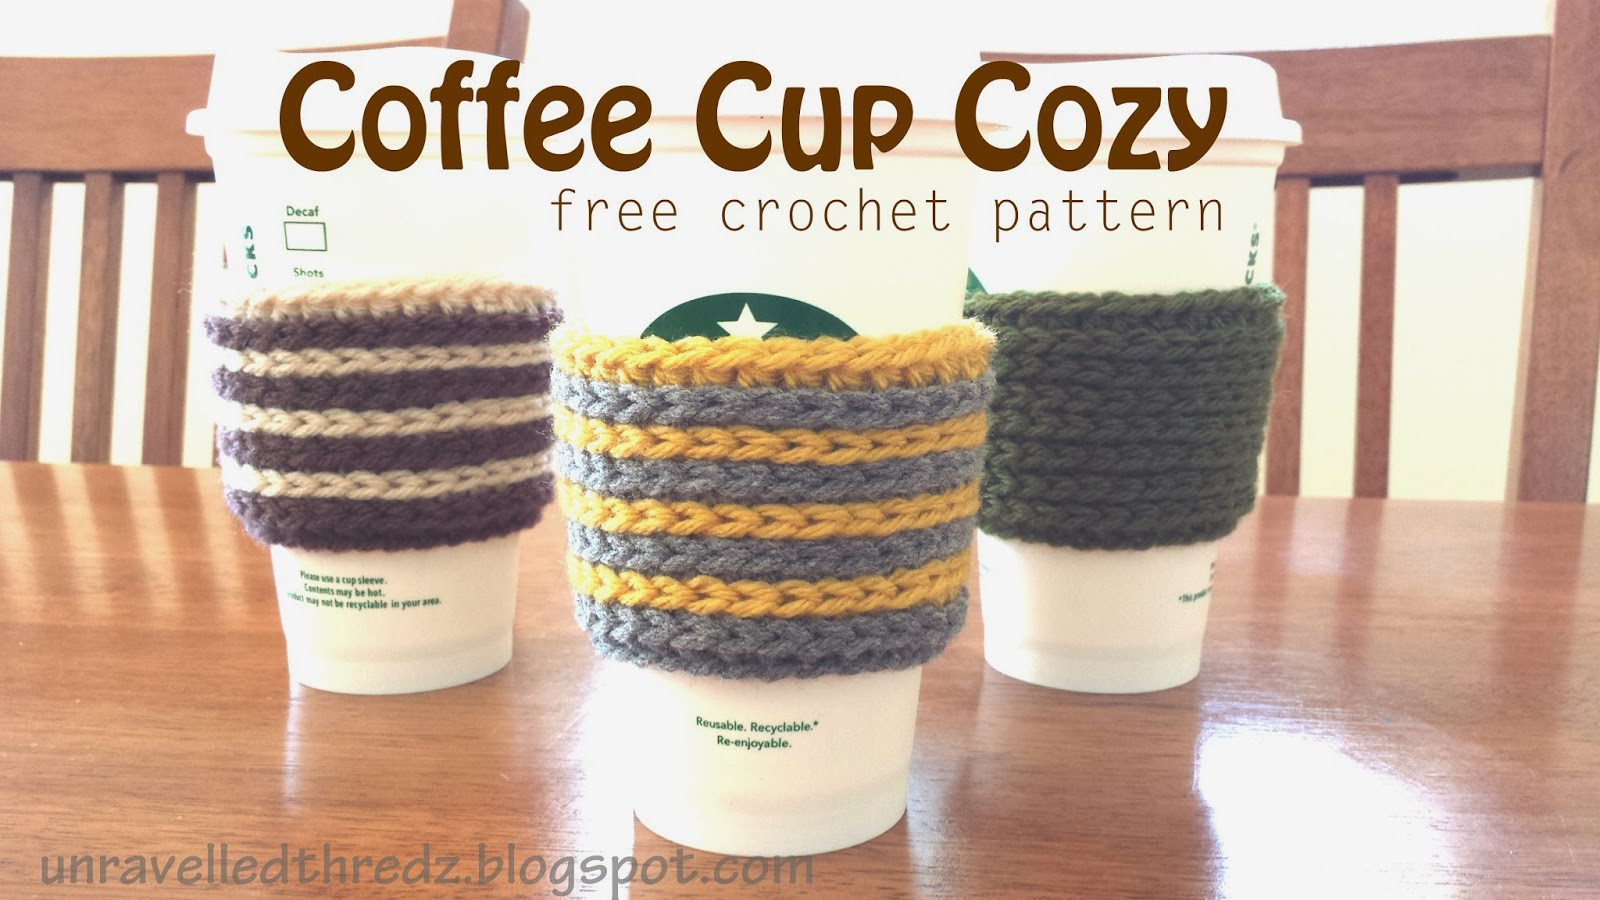 Crochet Coffee Cup Cozy Inspirational Crochet Class Beginning Crochet Sparkleez Crystles Of Crochet Coffee Cup Cozy Awesome Crochet and Other Stuff Crochet A Mug Cozy Free Pattern